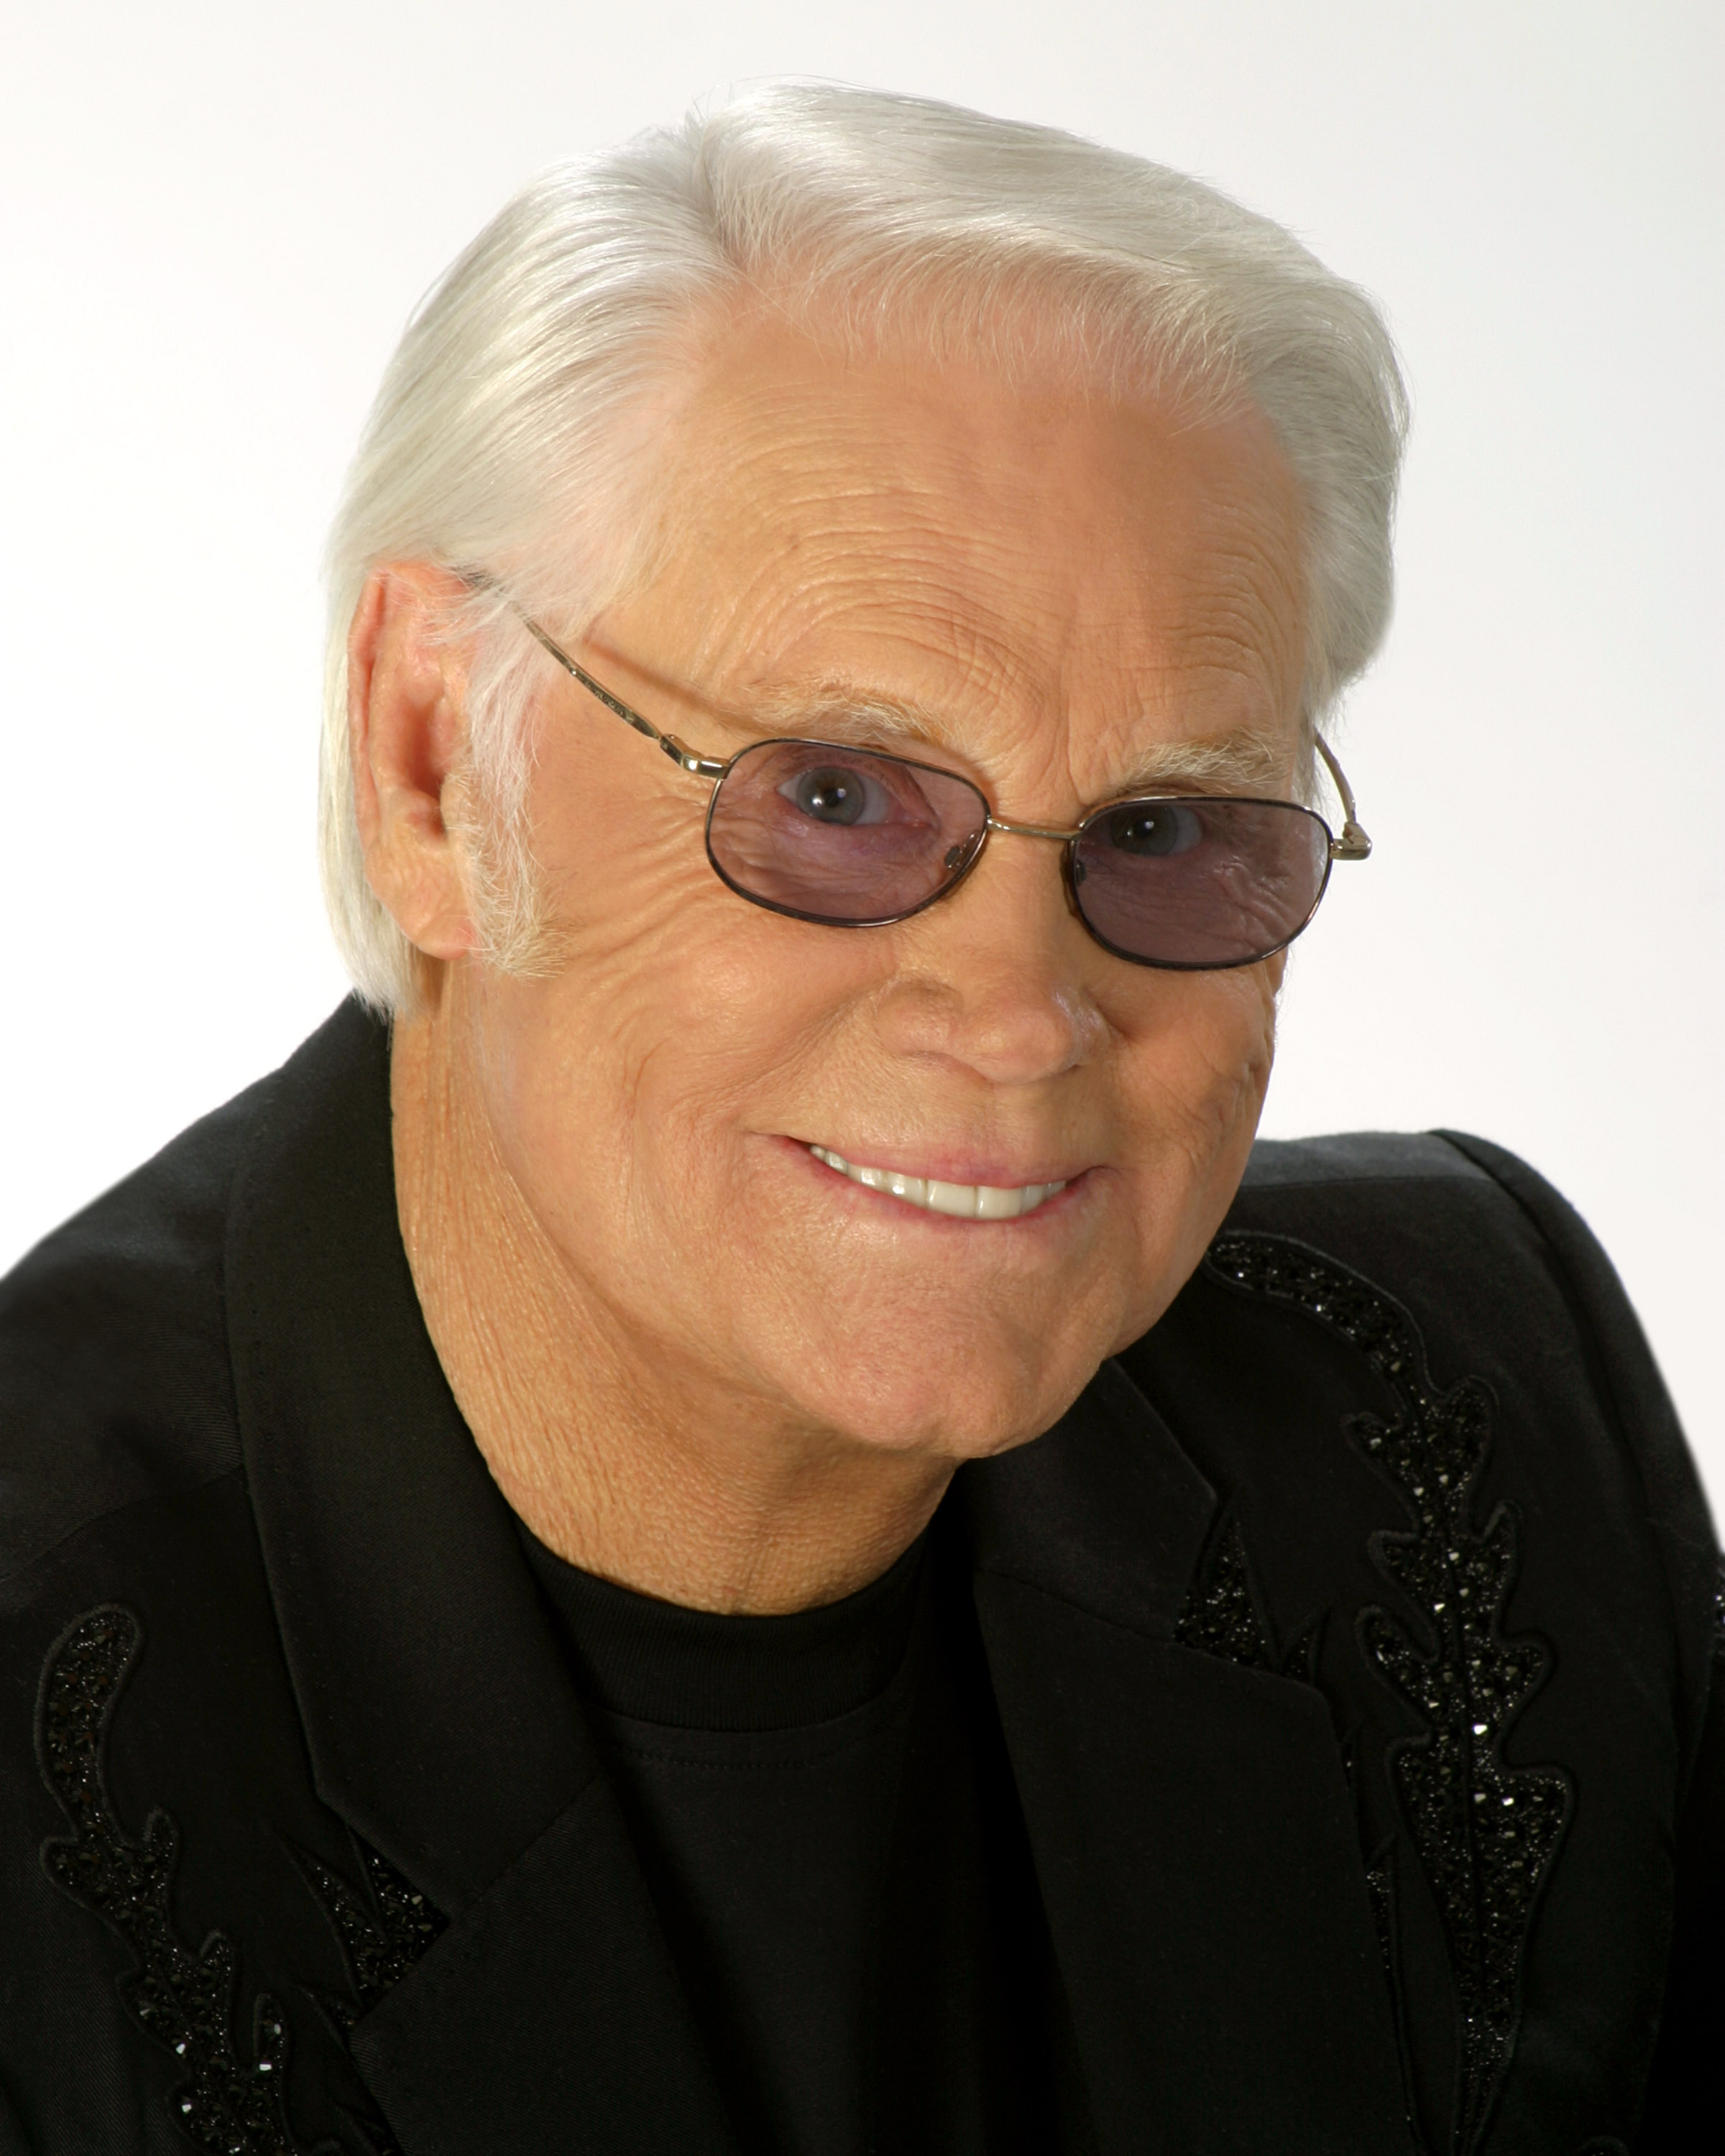 ... Wallpapers Of The Day: George Jones | 2400x3000px George Jones Images